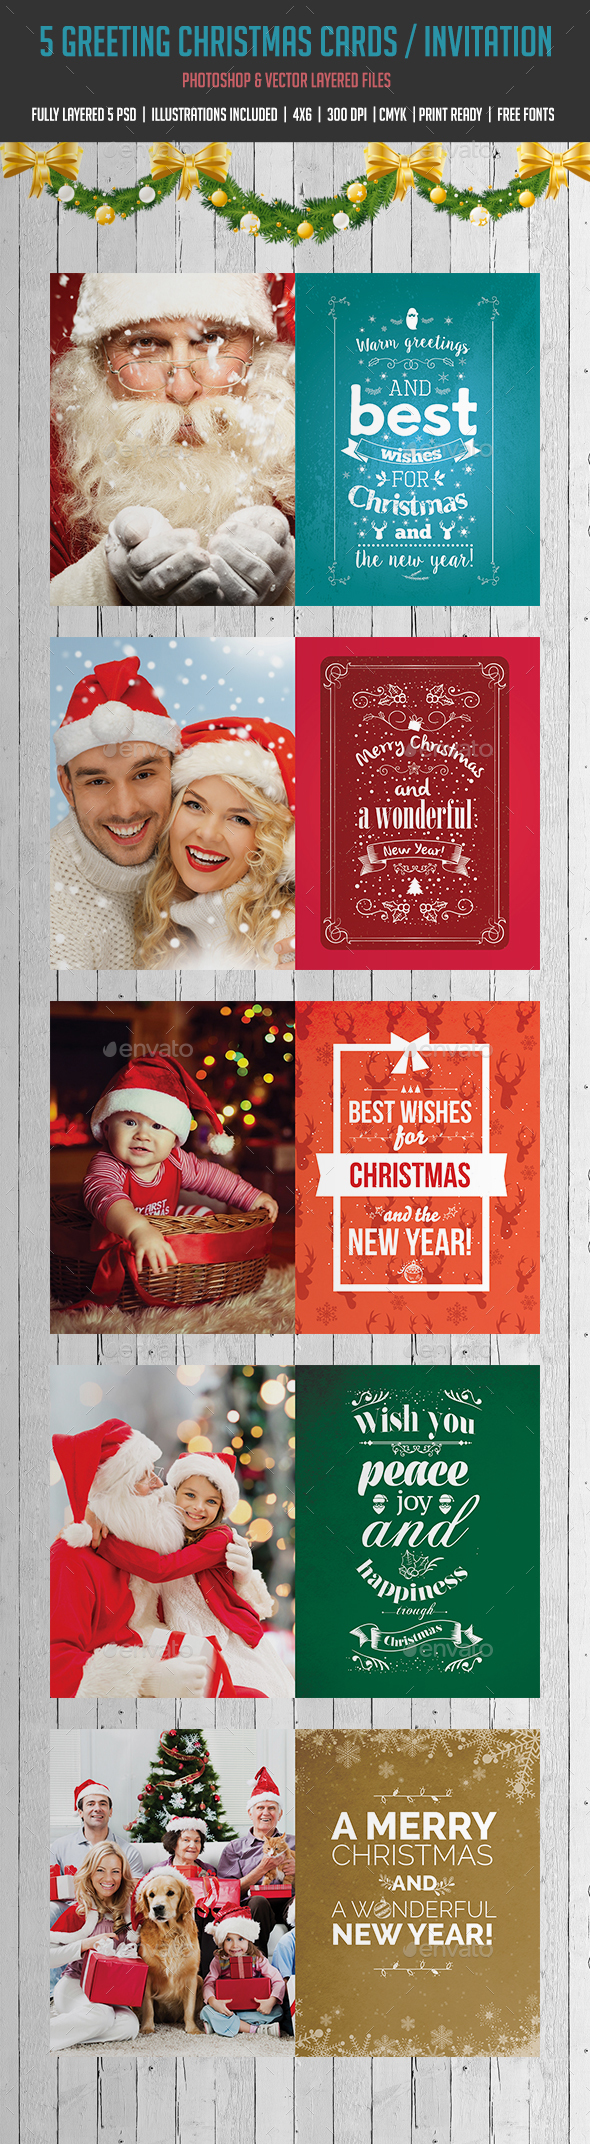 Christmas Card - Family - Greeting Cards Cards & Invites